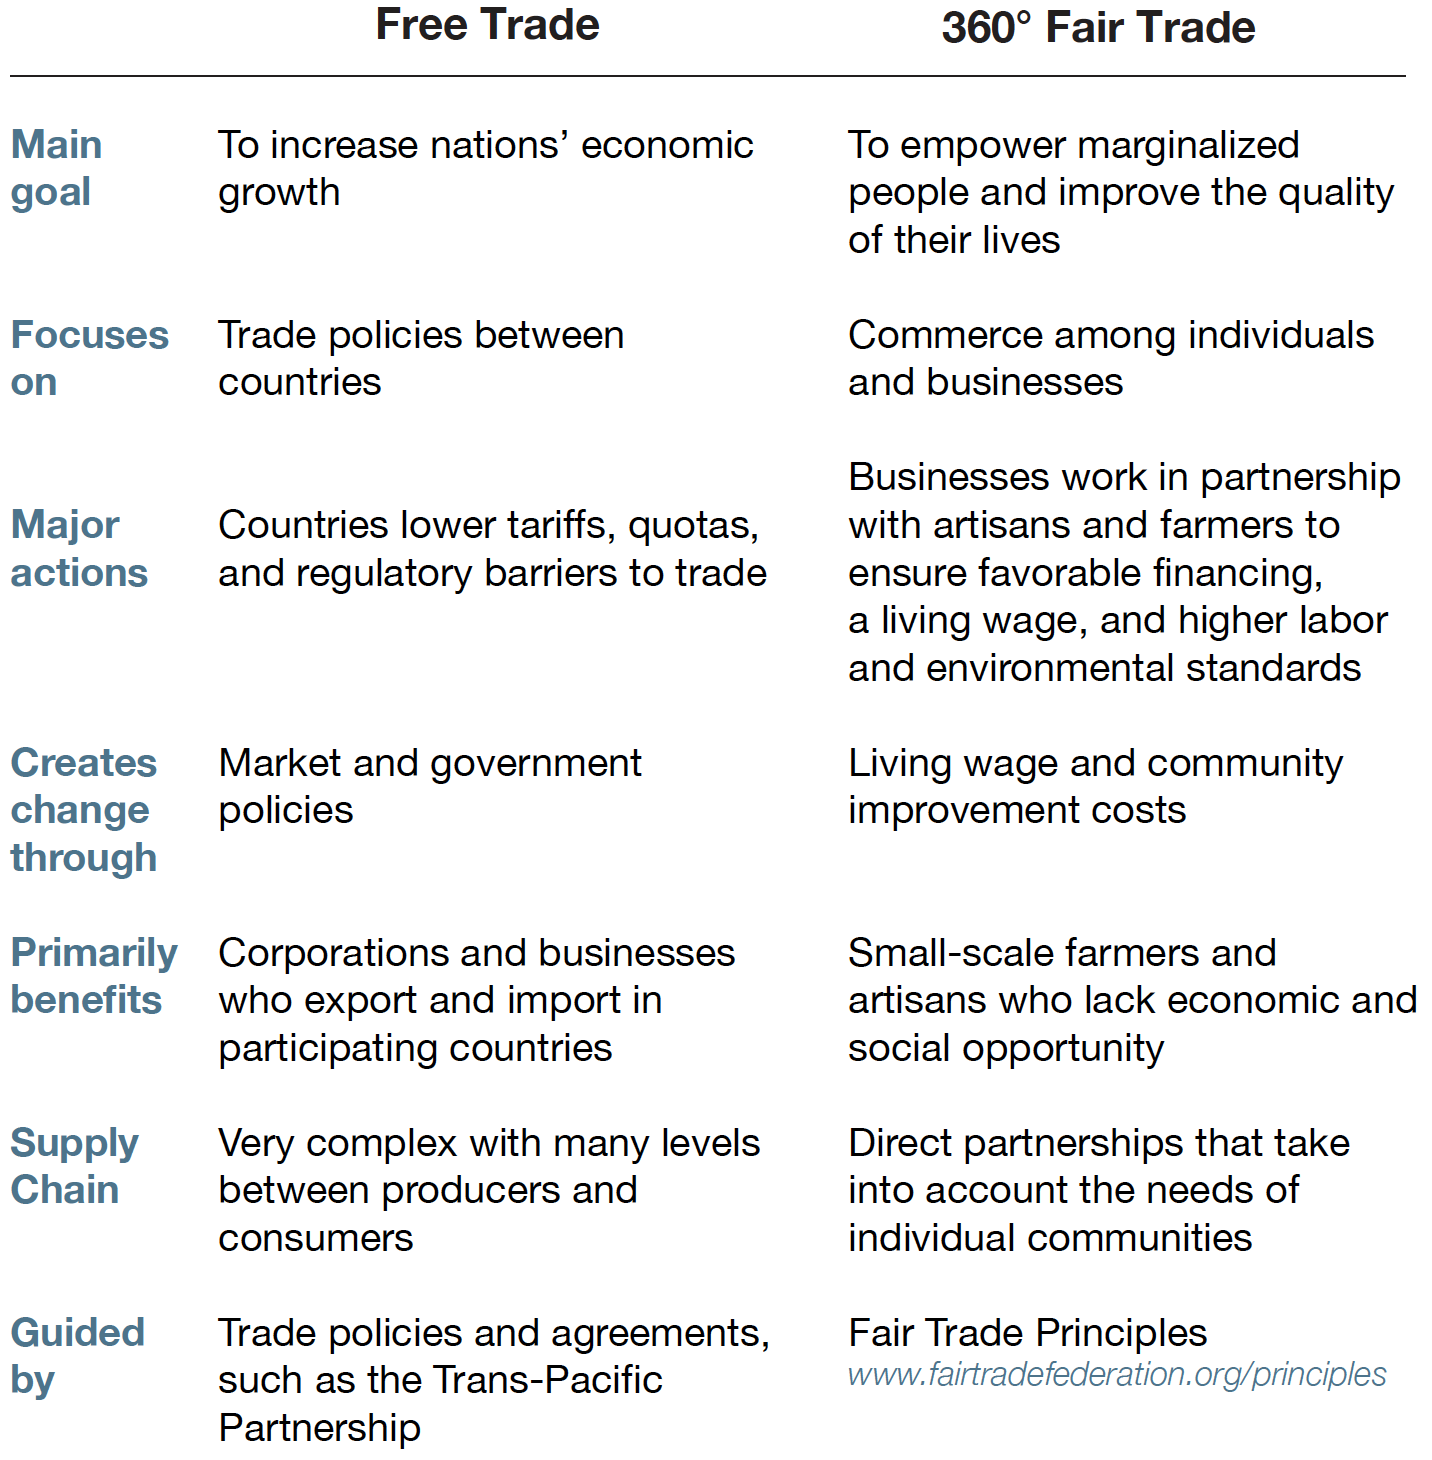 Free-Trade-Is-Not-Fair-Trade_Chart